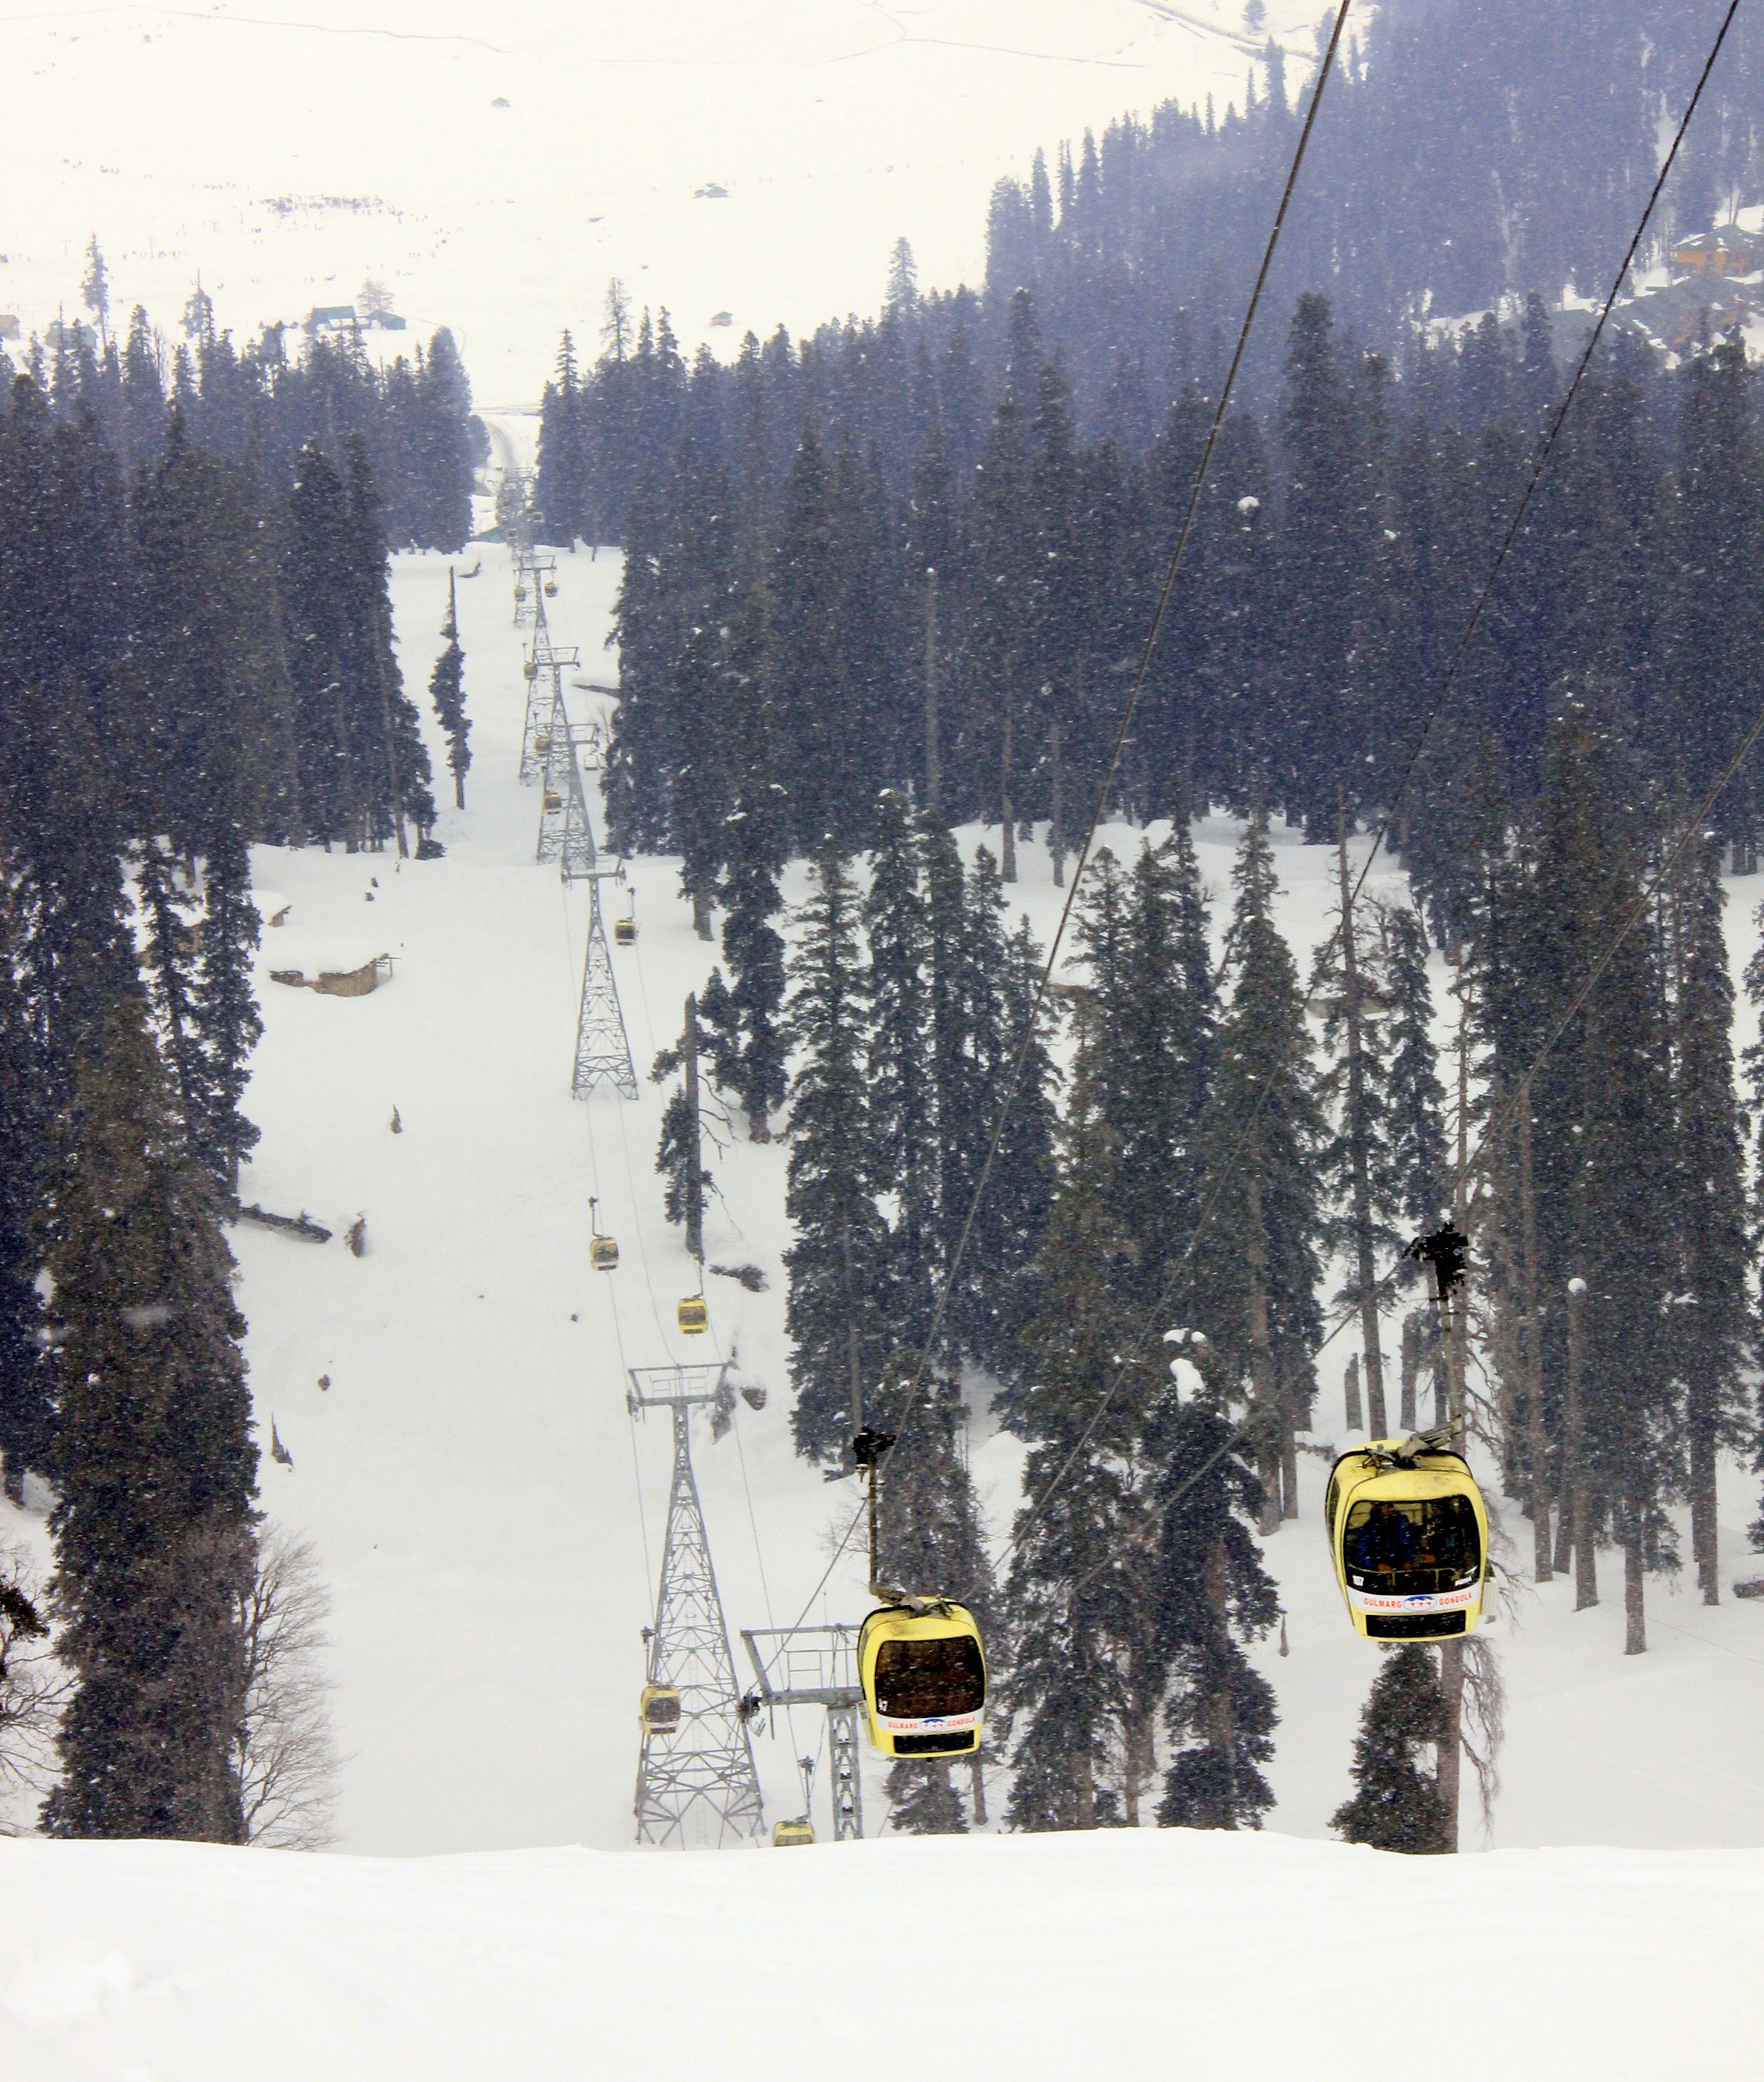 Kashmir in winter means riding the world's highest gondola